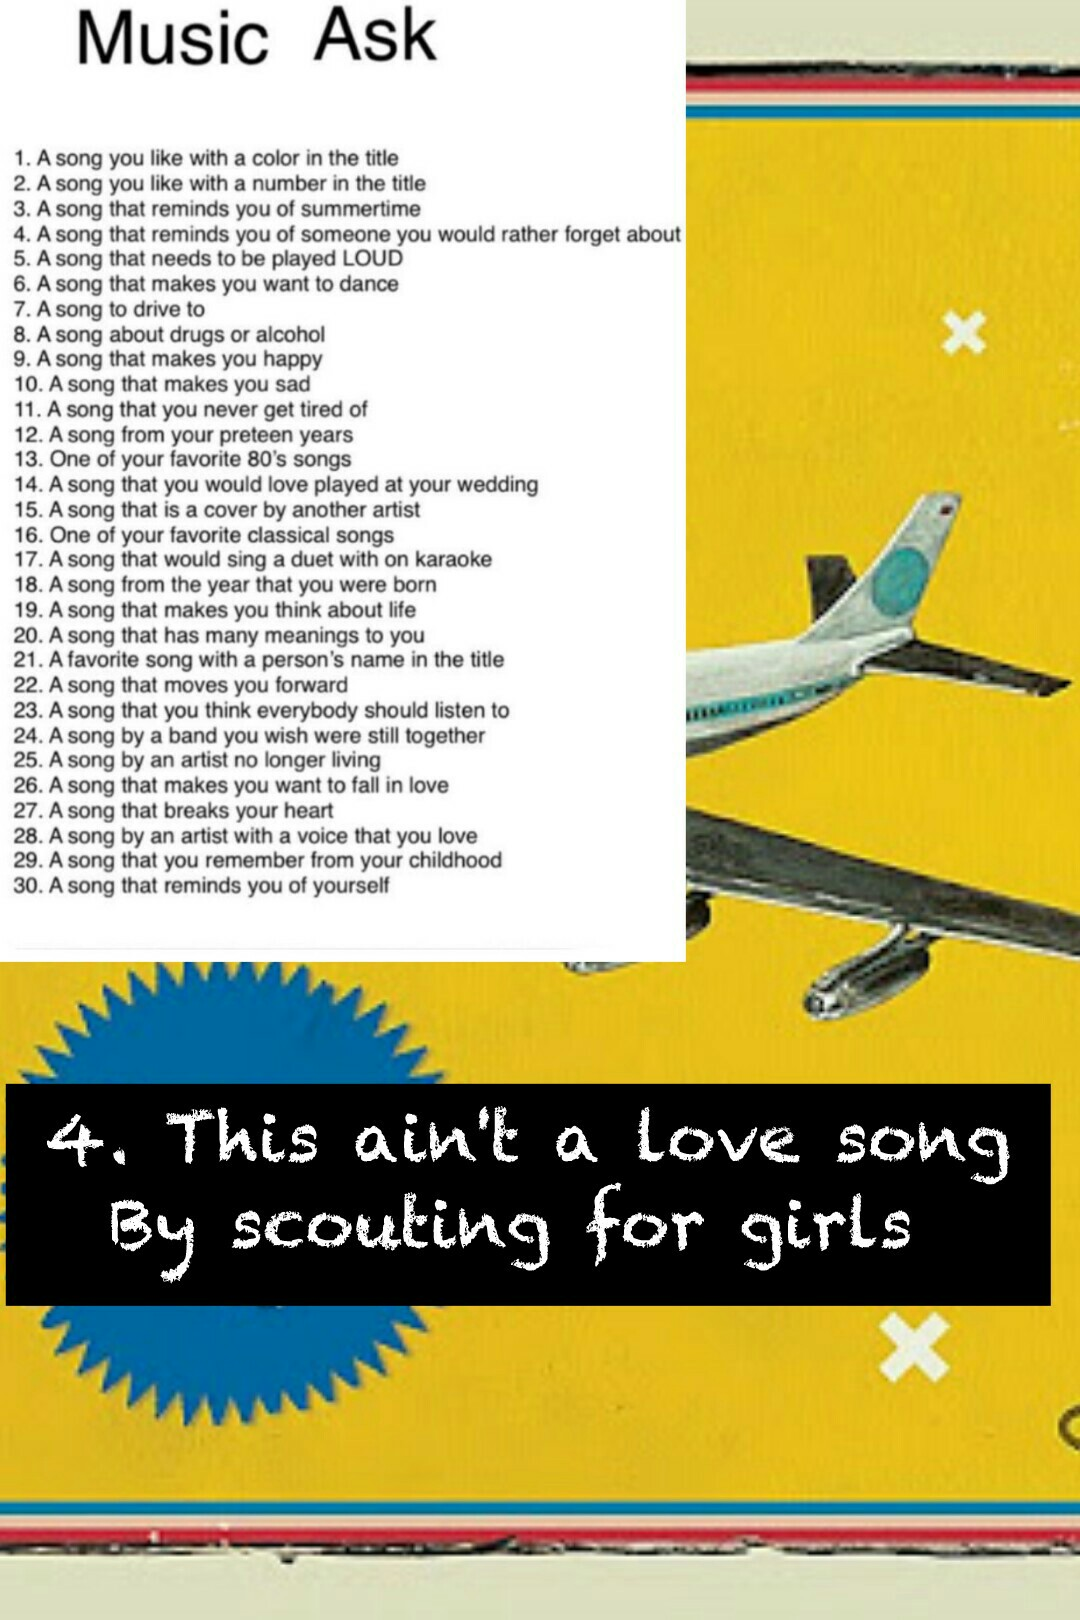 4. This ain't a love song By scouting for girls